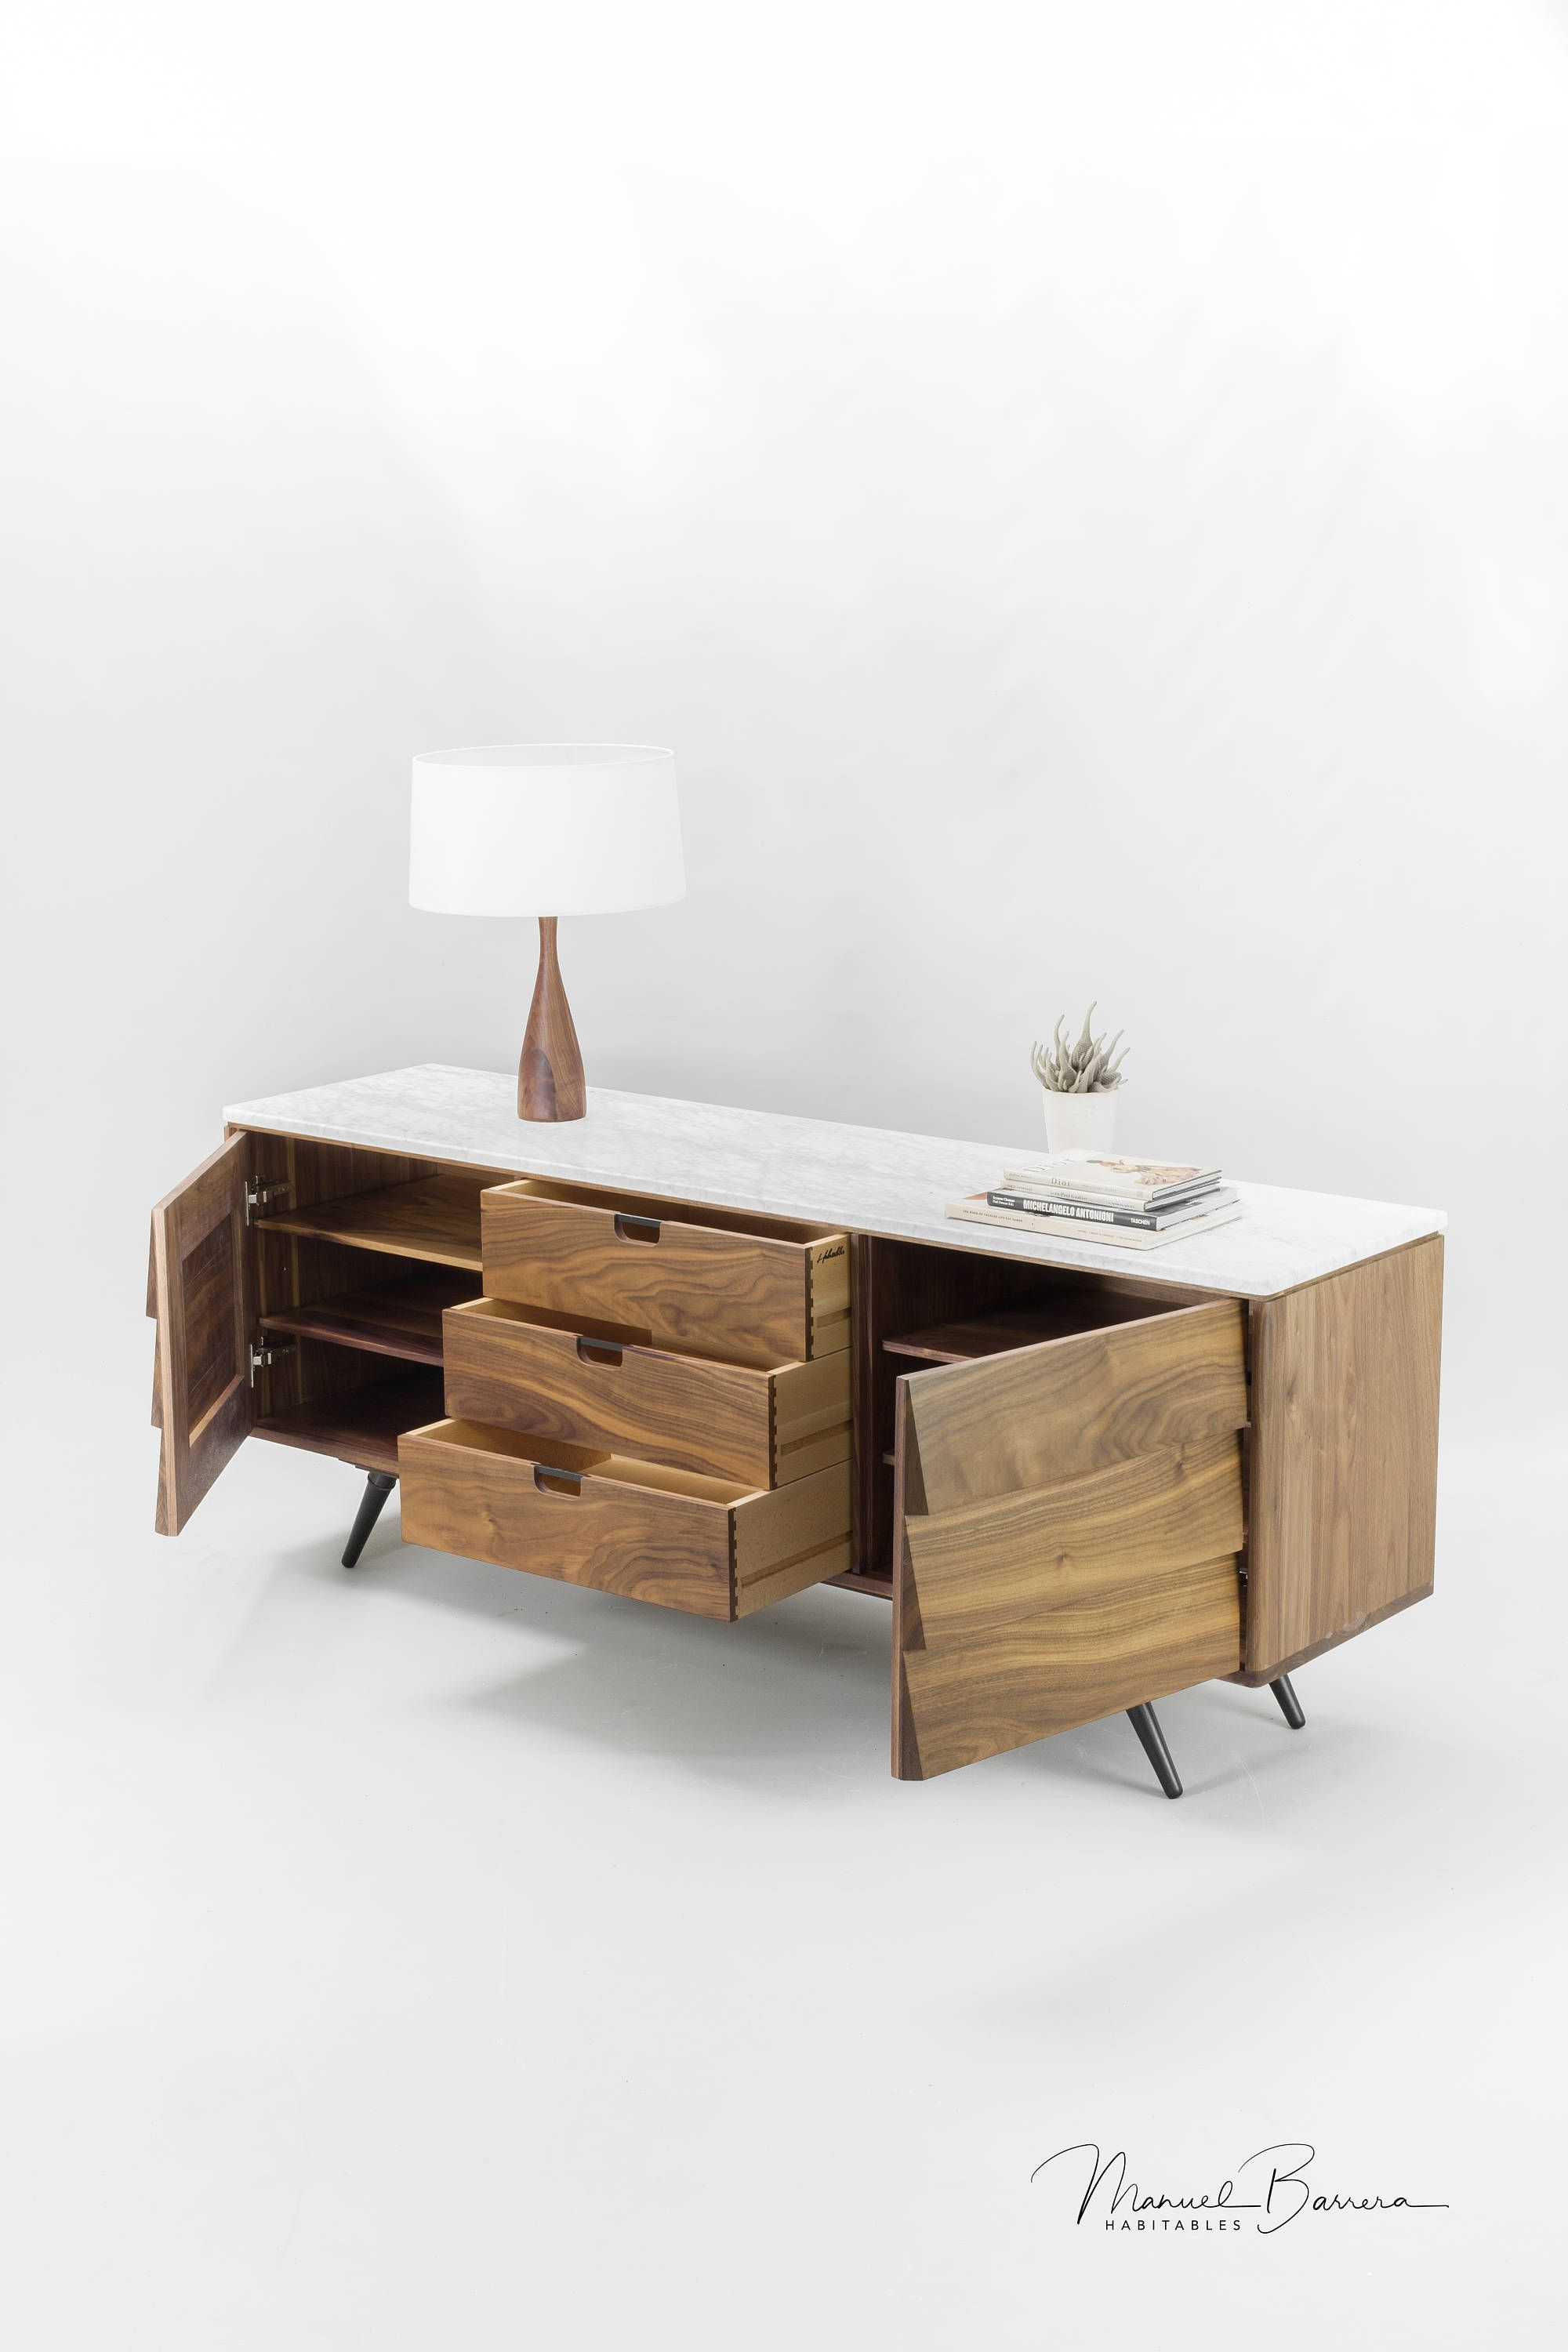 Walnut And Marble Sideboard By Manuel Barrera With Images Sideboard Marble